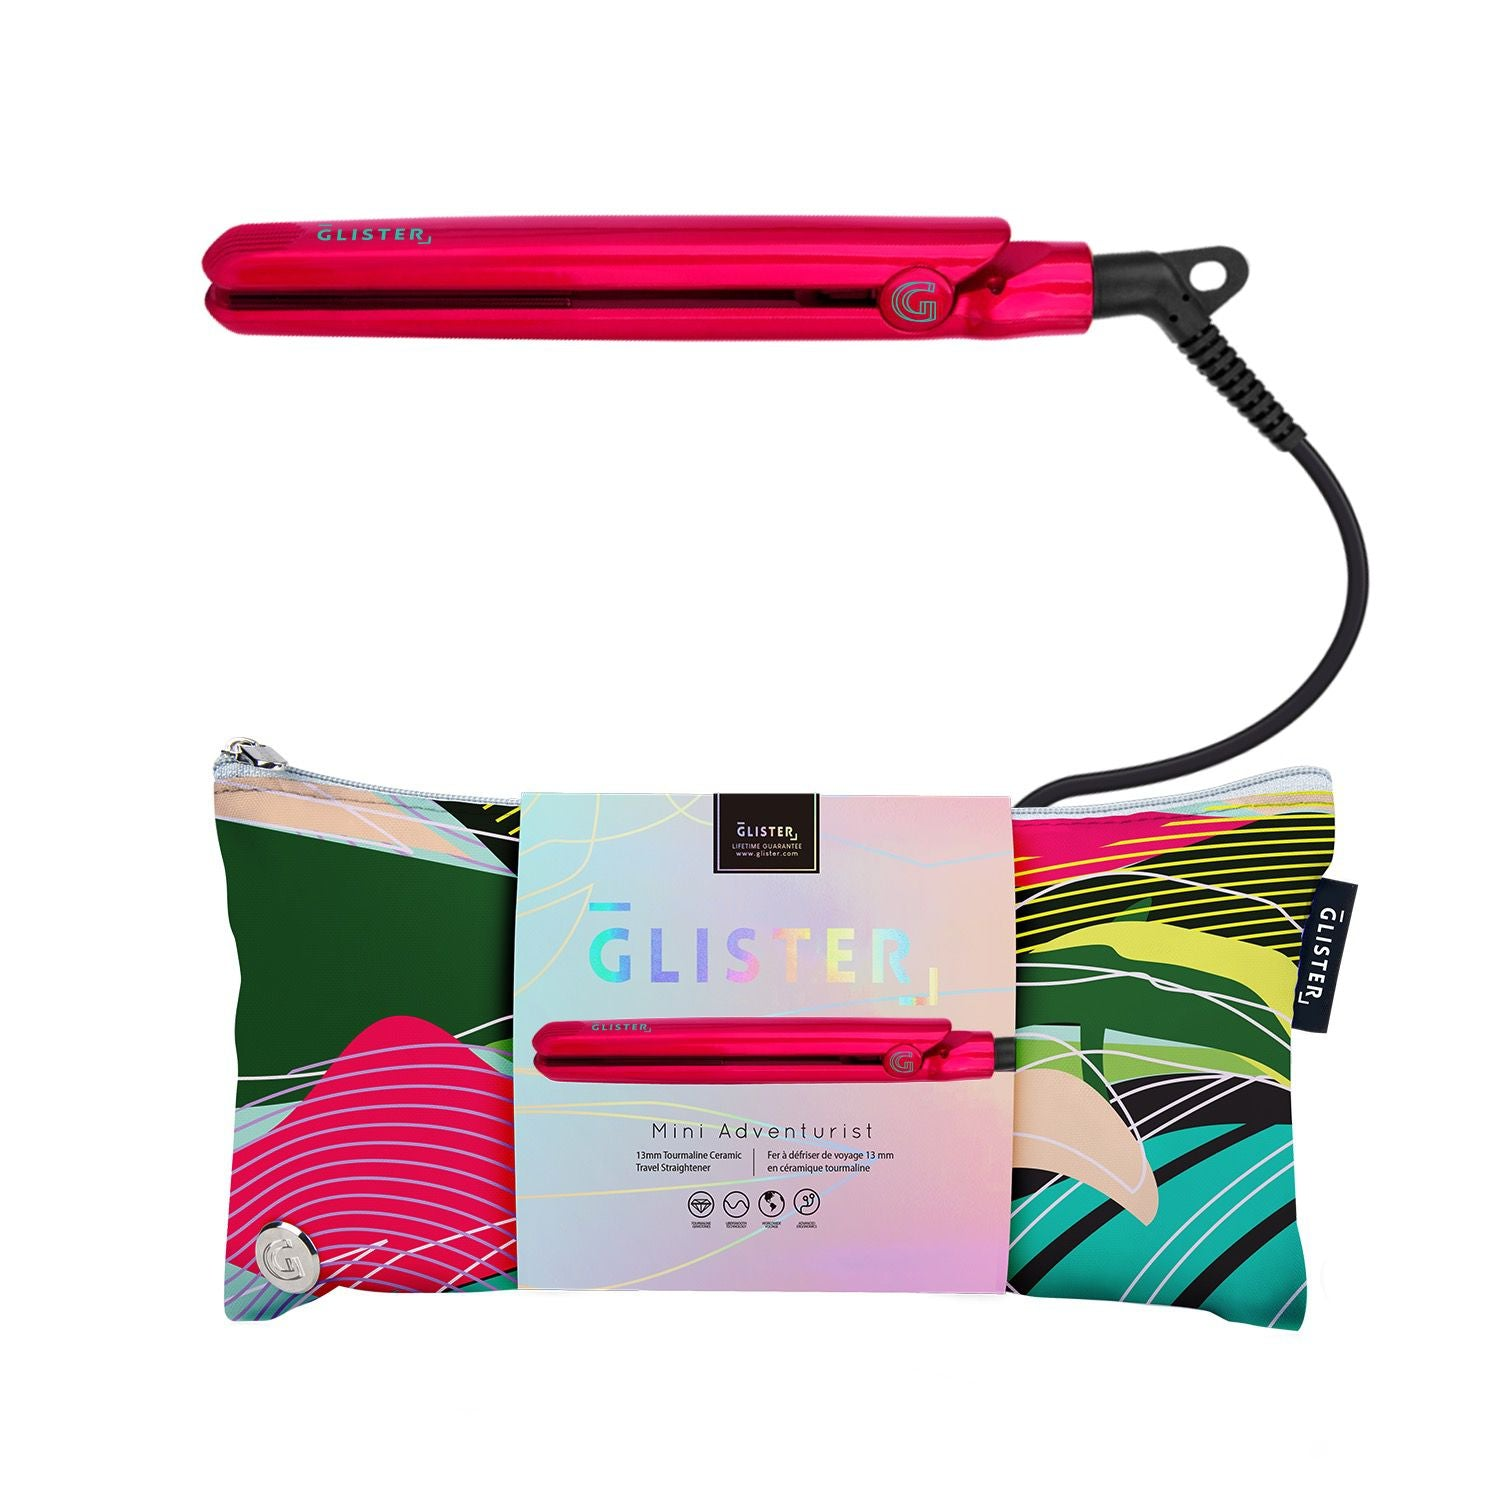 Mini Adventurist Flat Iron (with Designer Travel Pouch) - Flamingo